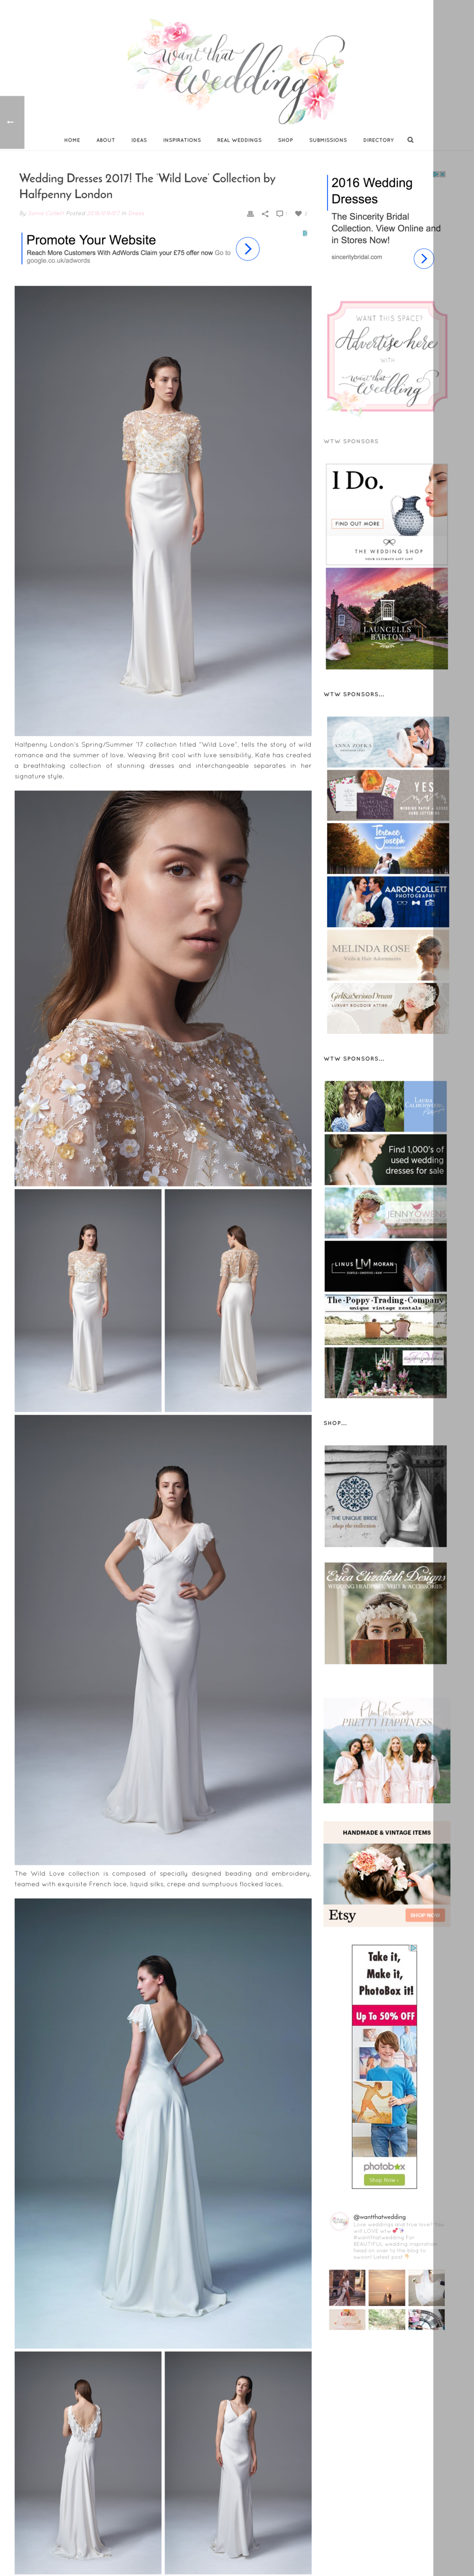 Want that wedding - Wedding Dresses 2017  The  Wild Love  Collection by Halfpenny London.png